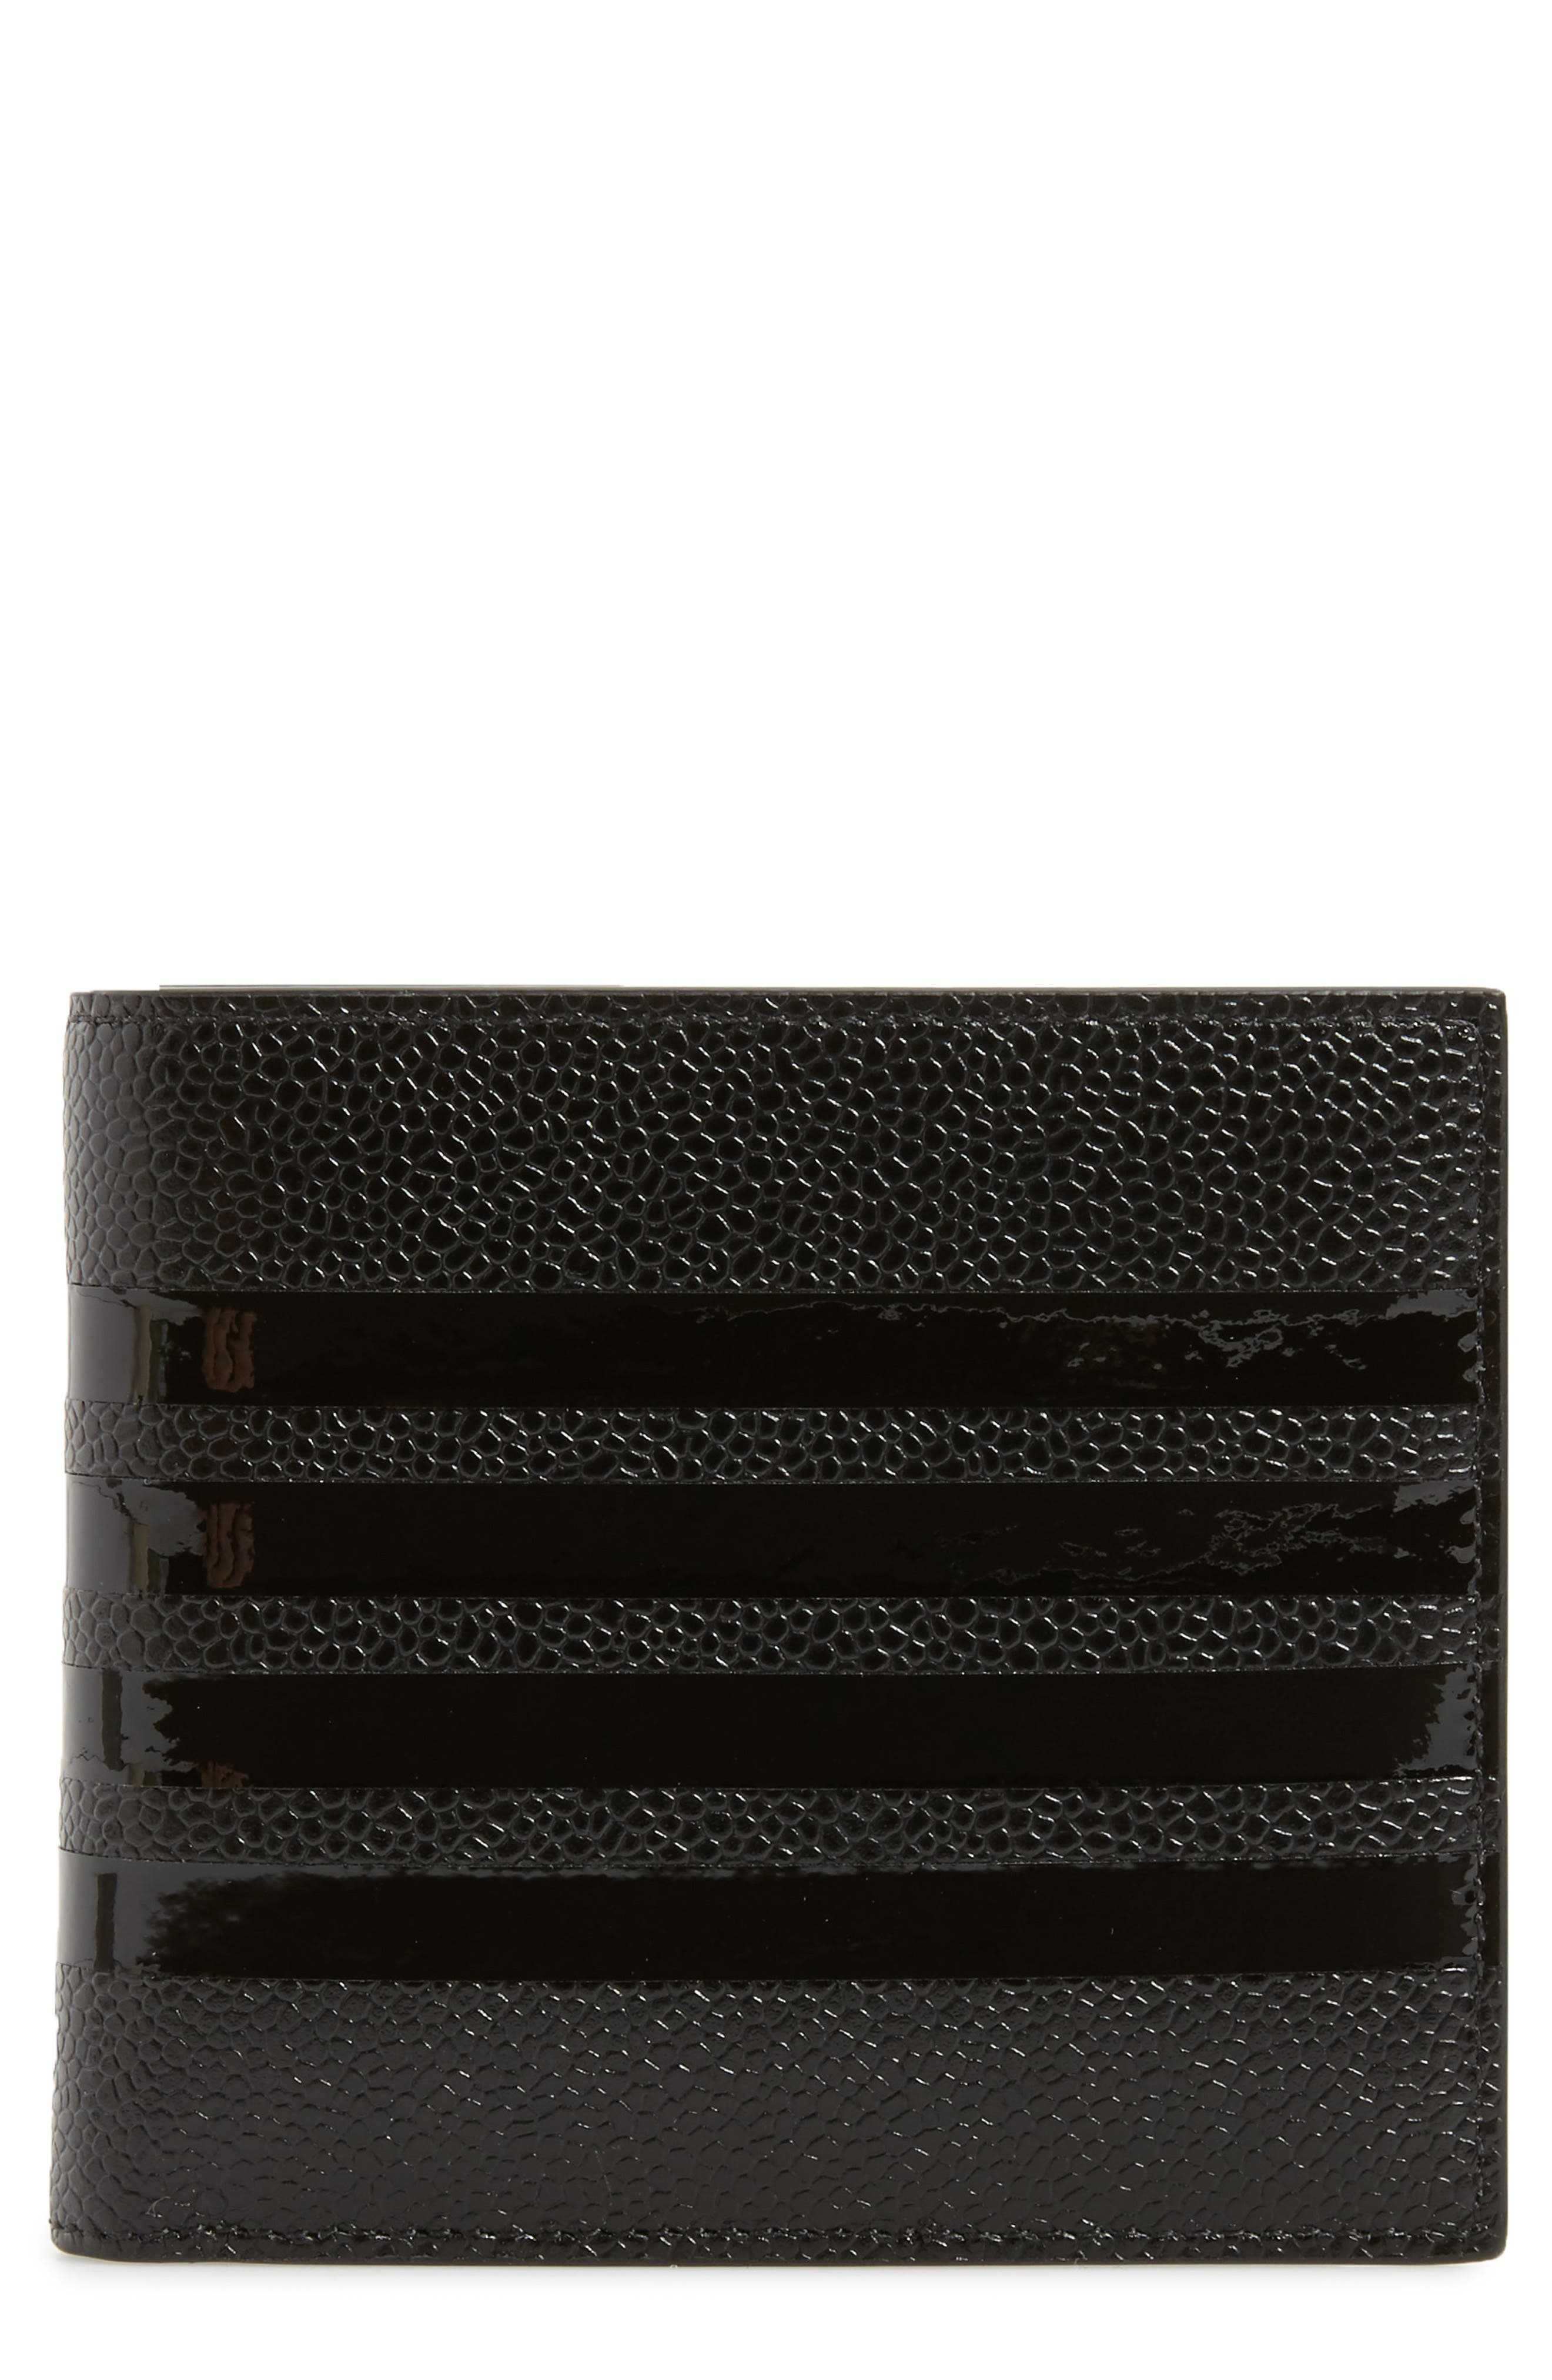 Patent Leather Bifold Wallet,                         Main,                         color, Black